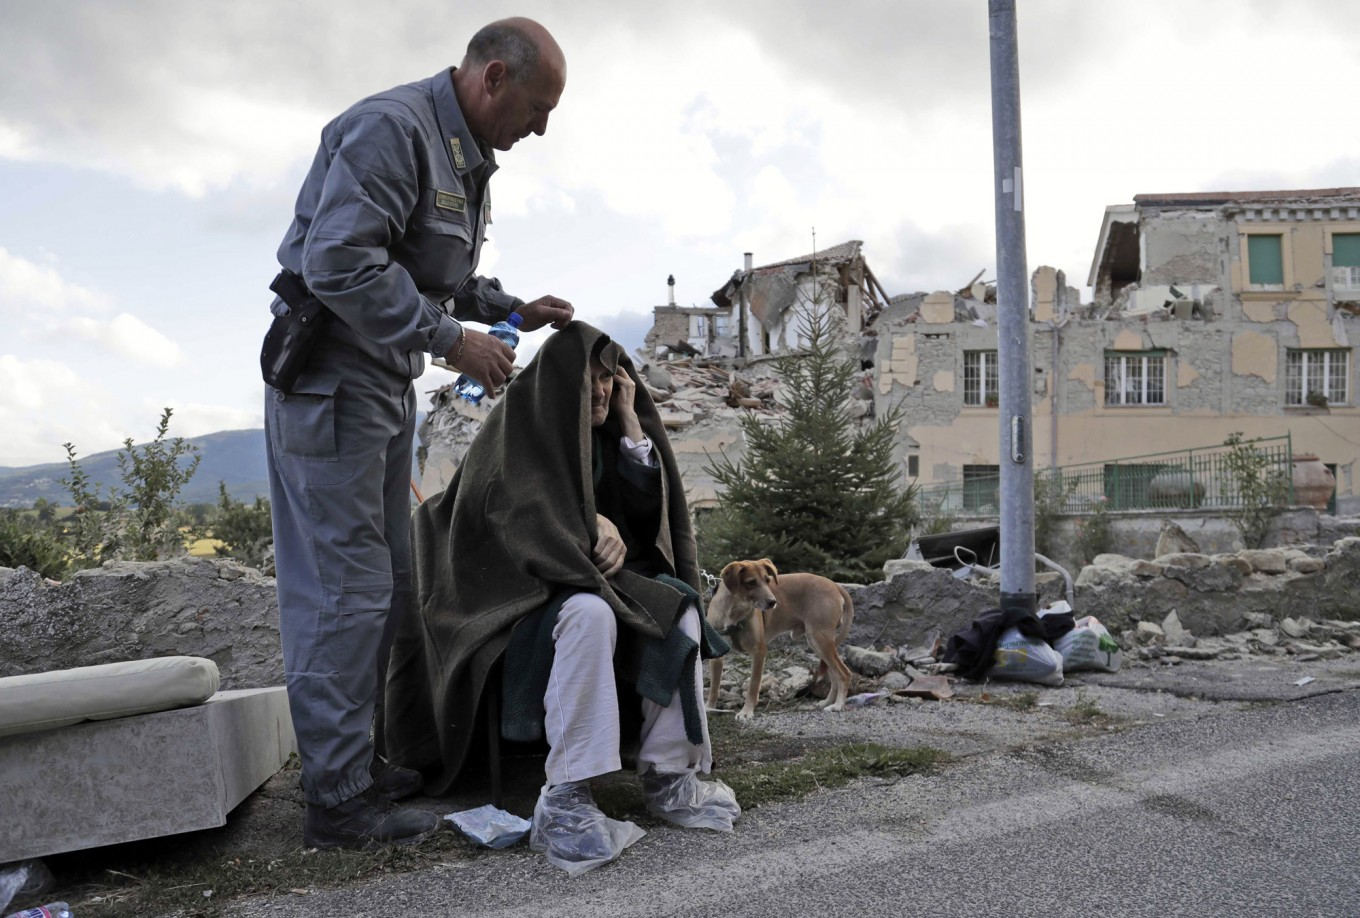 An elderly man is given assistance as collapsed buildings are seen in the background following an earthquake, in Amatrice, Italy, Wednesday, Aug. 24, 2016.  The magnitude 6 quake struck at 3:36 a.m. [0136 GMT] and was felt across a broad swath of central Italy, including Rome where residents of the capital felt a long swaying followed by aftershocks. AP Photo/Alessandra Tarantino